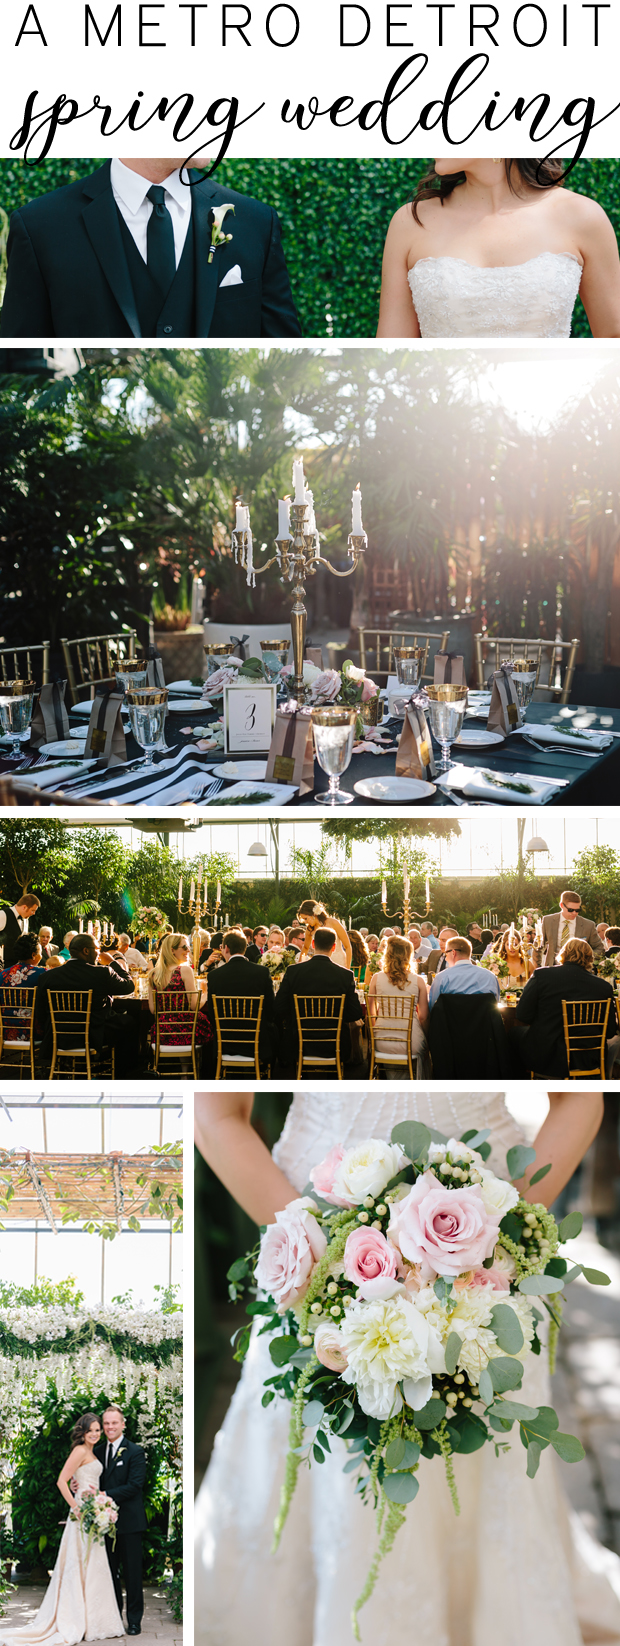 Our wedding summary_Pinterest